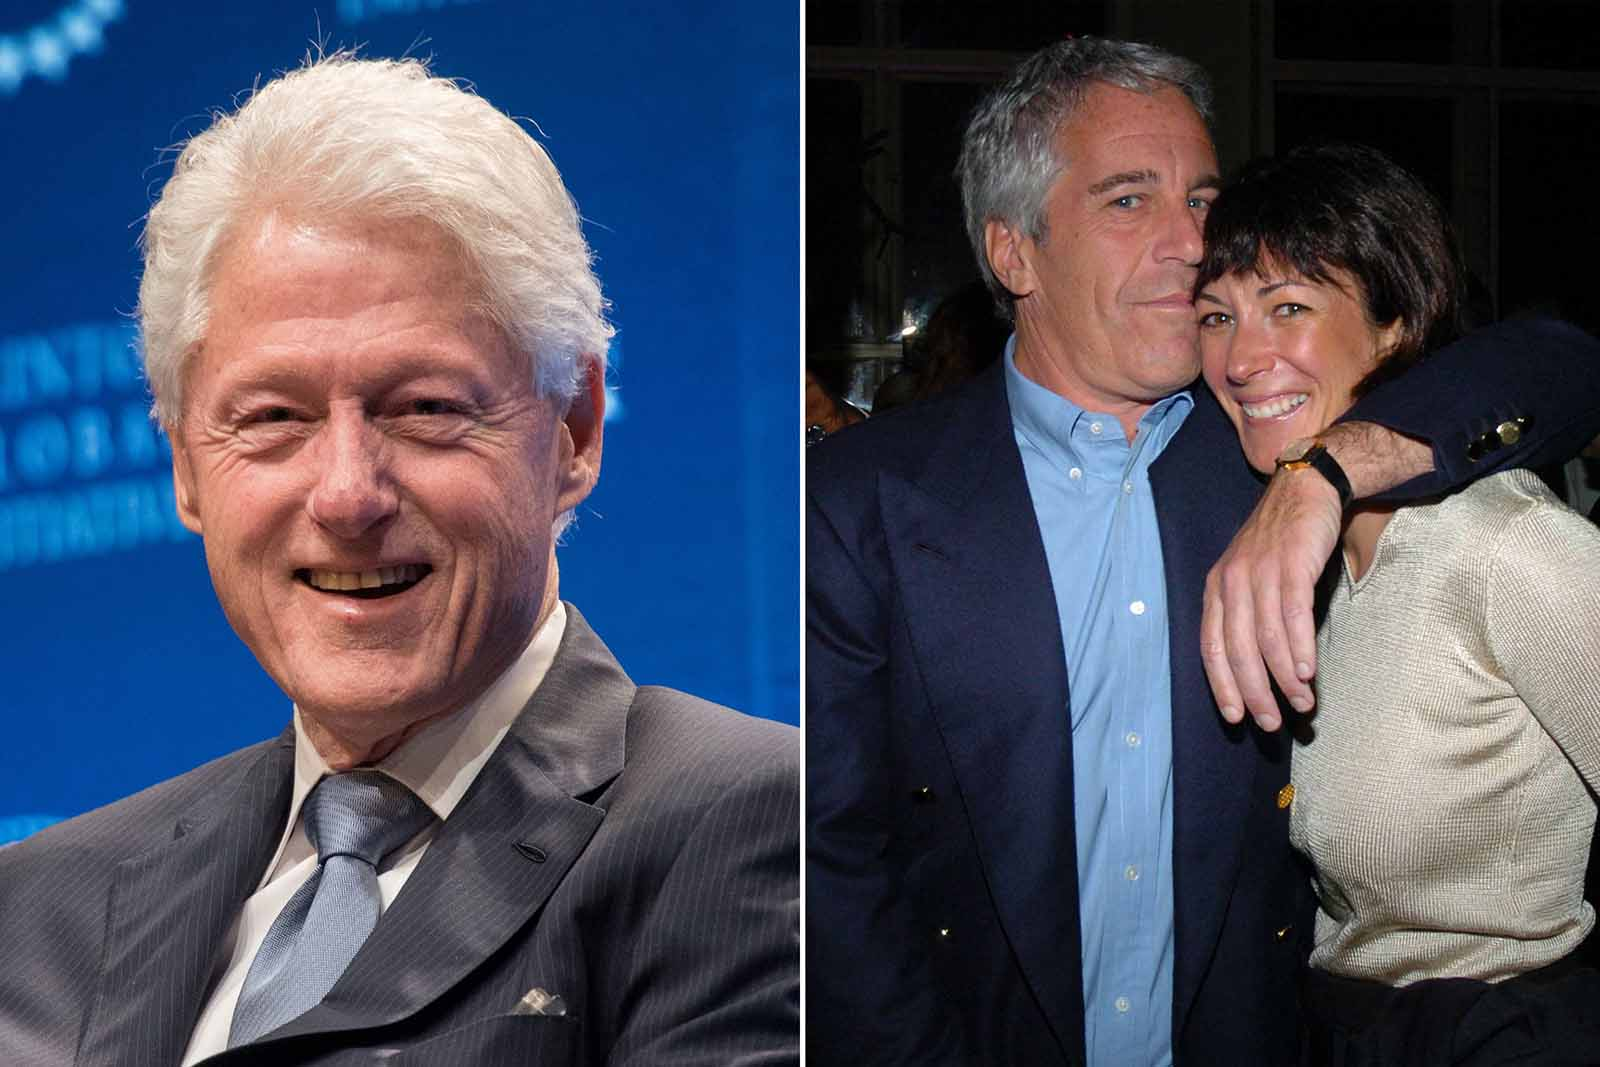 Ghislaine Maxwell couldn't stop the release of documents from her 2015 lawsuit, and so a lot of Jeffrey Epstein facts in the news have been proven false.